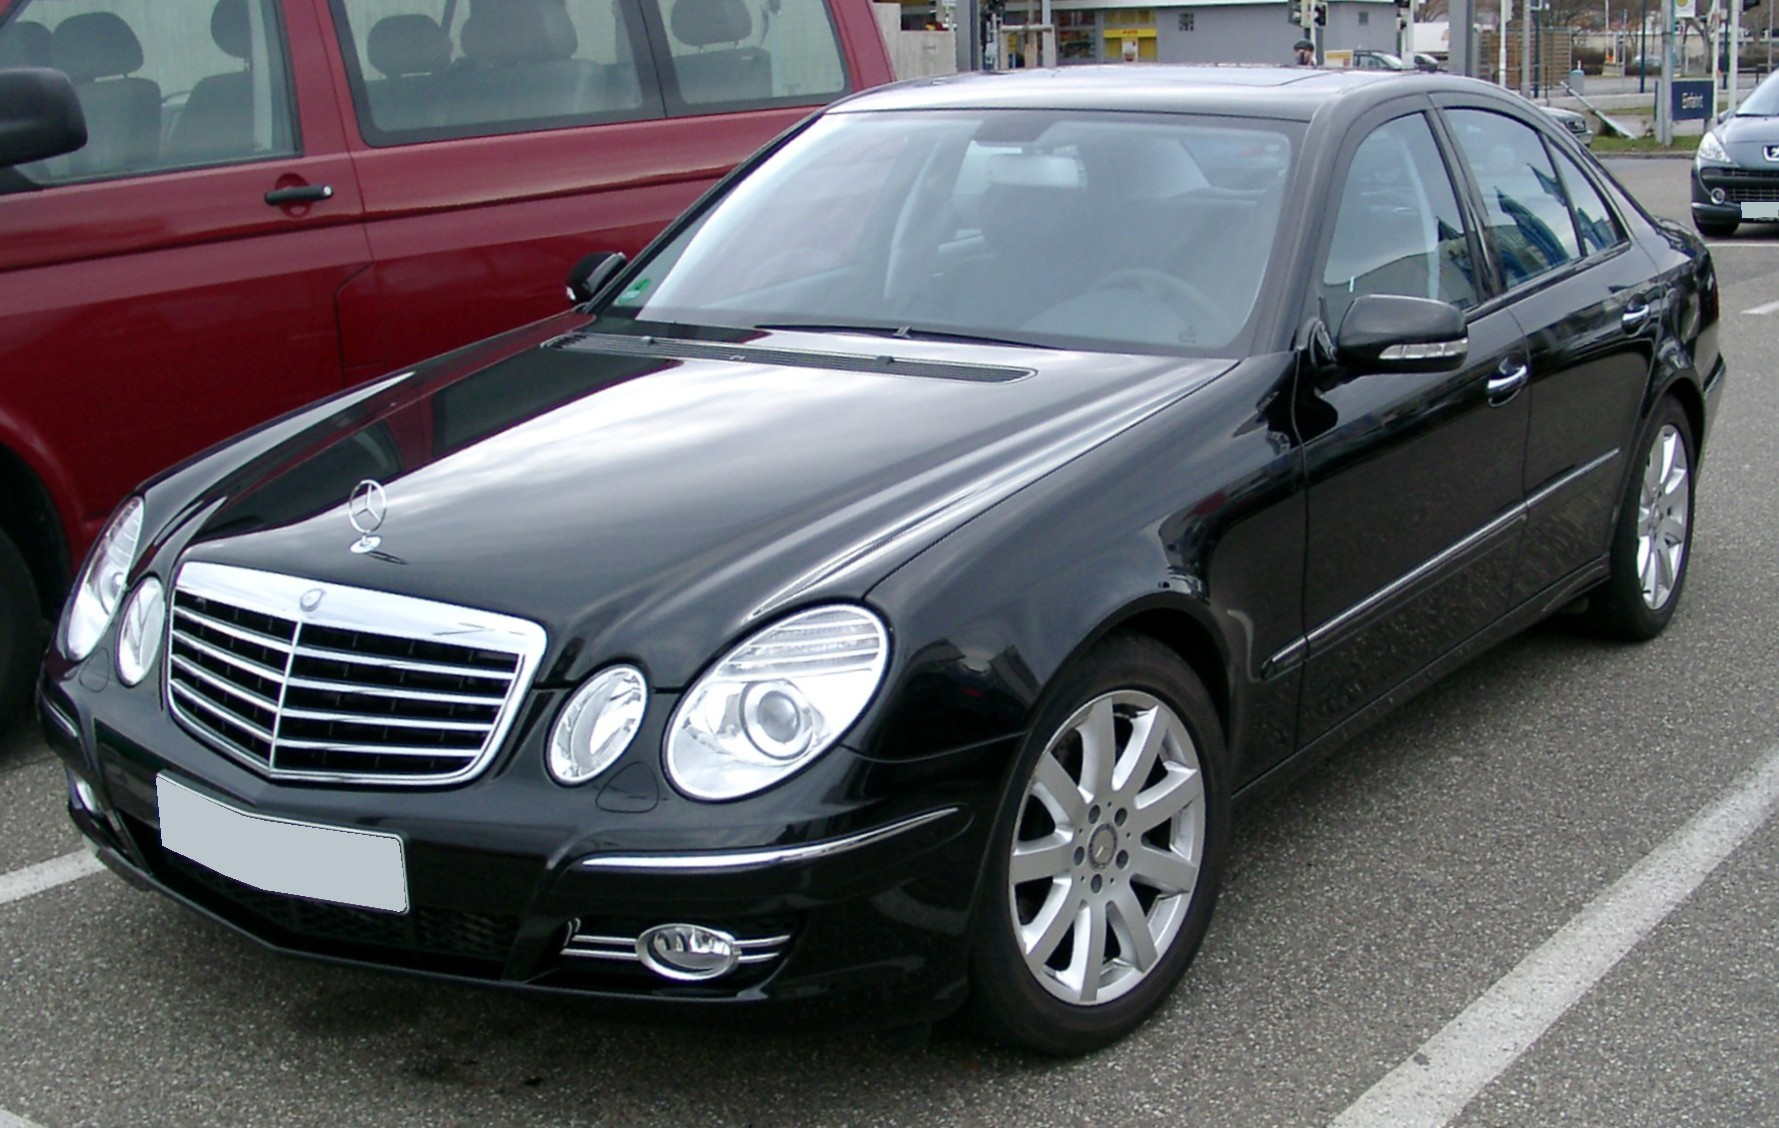 http://upload.wikimedia.org/wikipedia/commons/0/06/Mercedes_W211_front_20080127.jpg